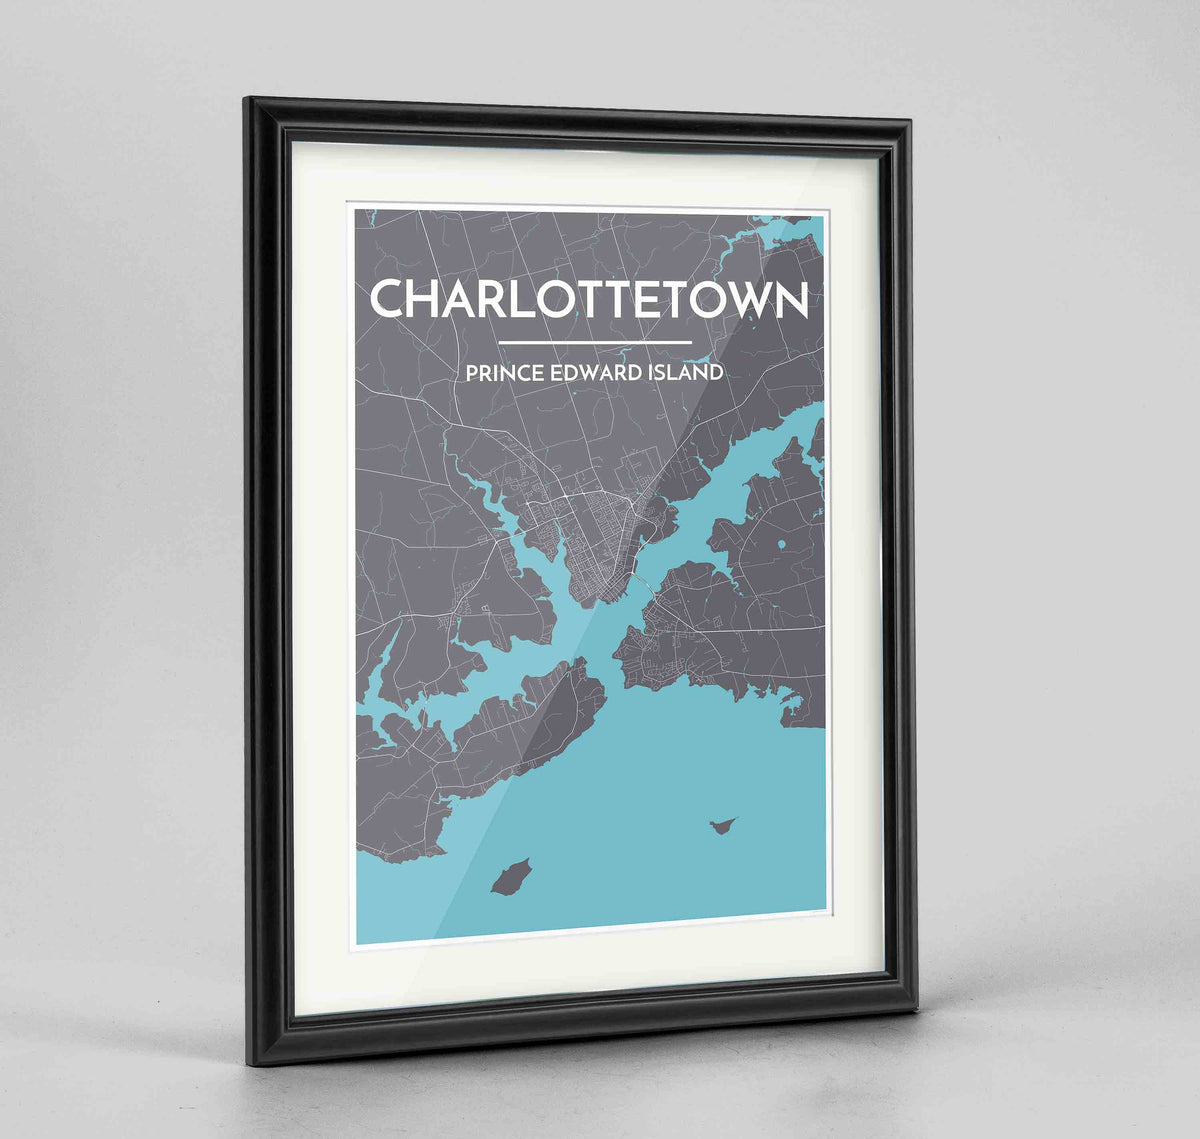 "Framed Charlottetown City Map 24x36"" Traditional Black frame Point Two Design Group"